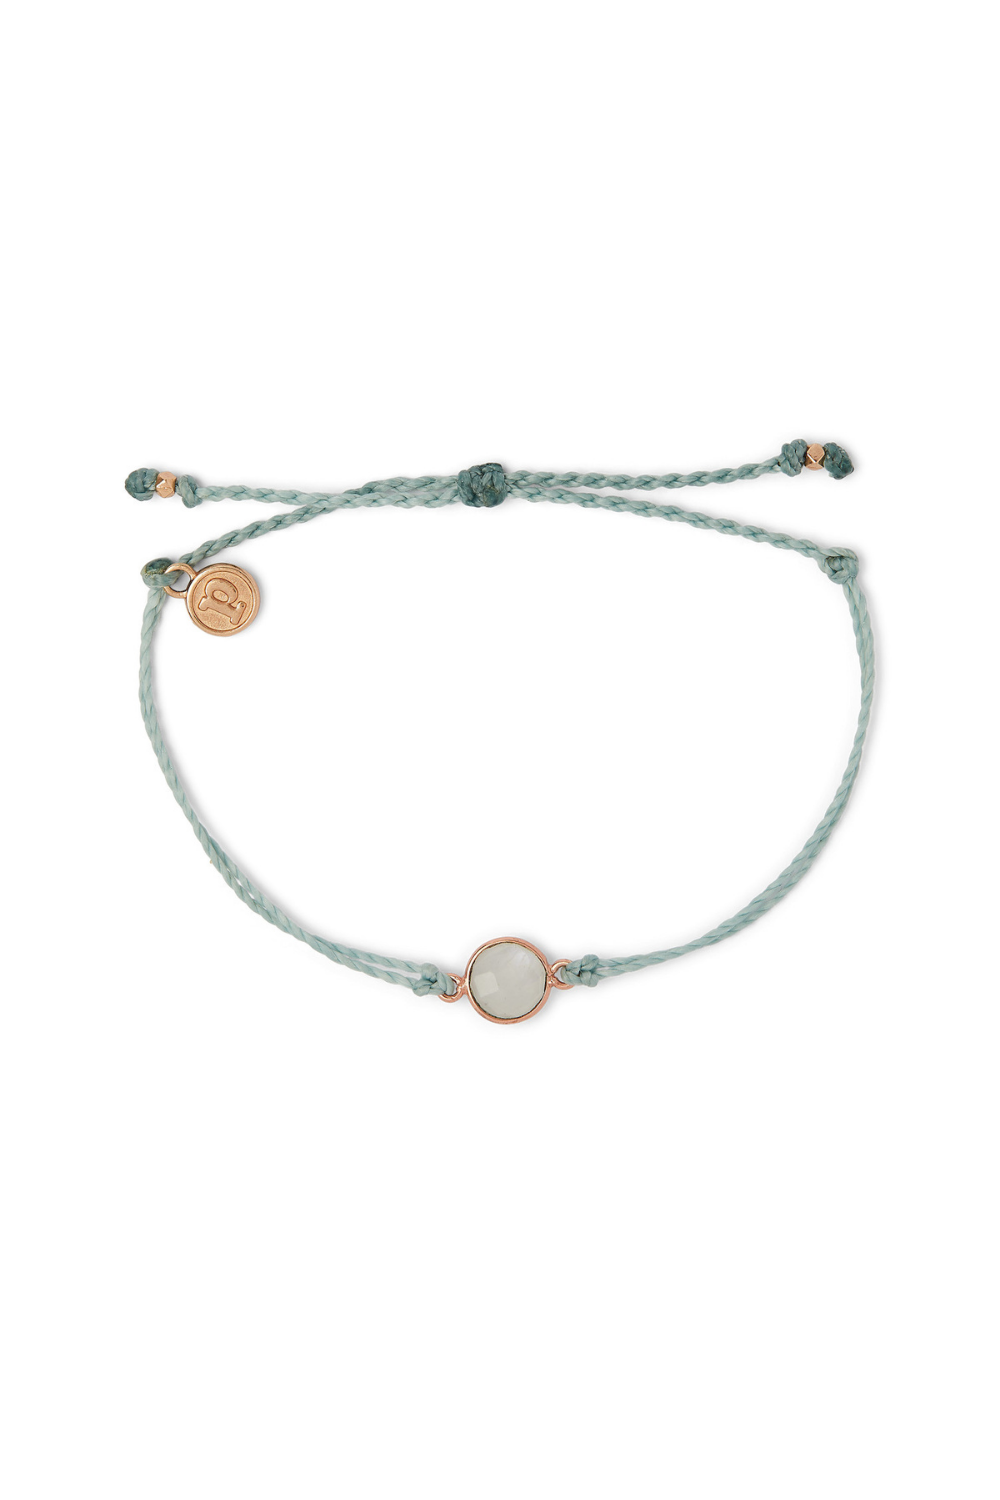 Pura Vida Rose Gold Round Moonstone Bracelet | Bella Lucca Boutique